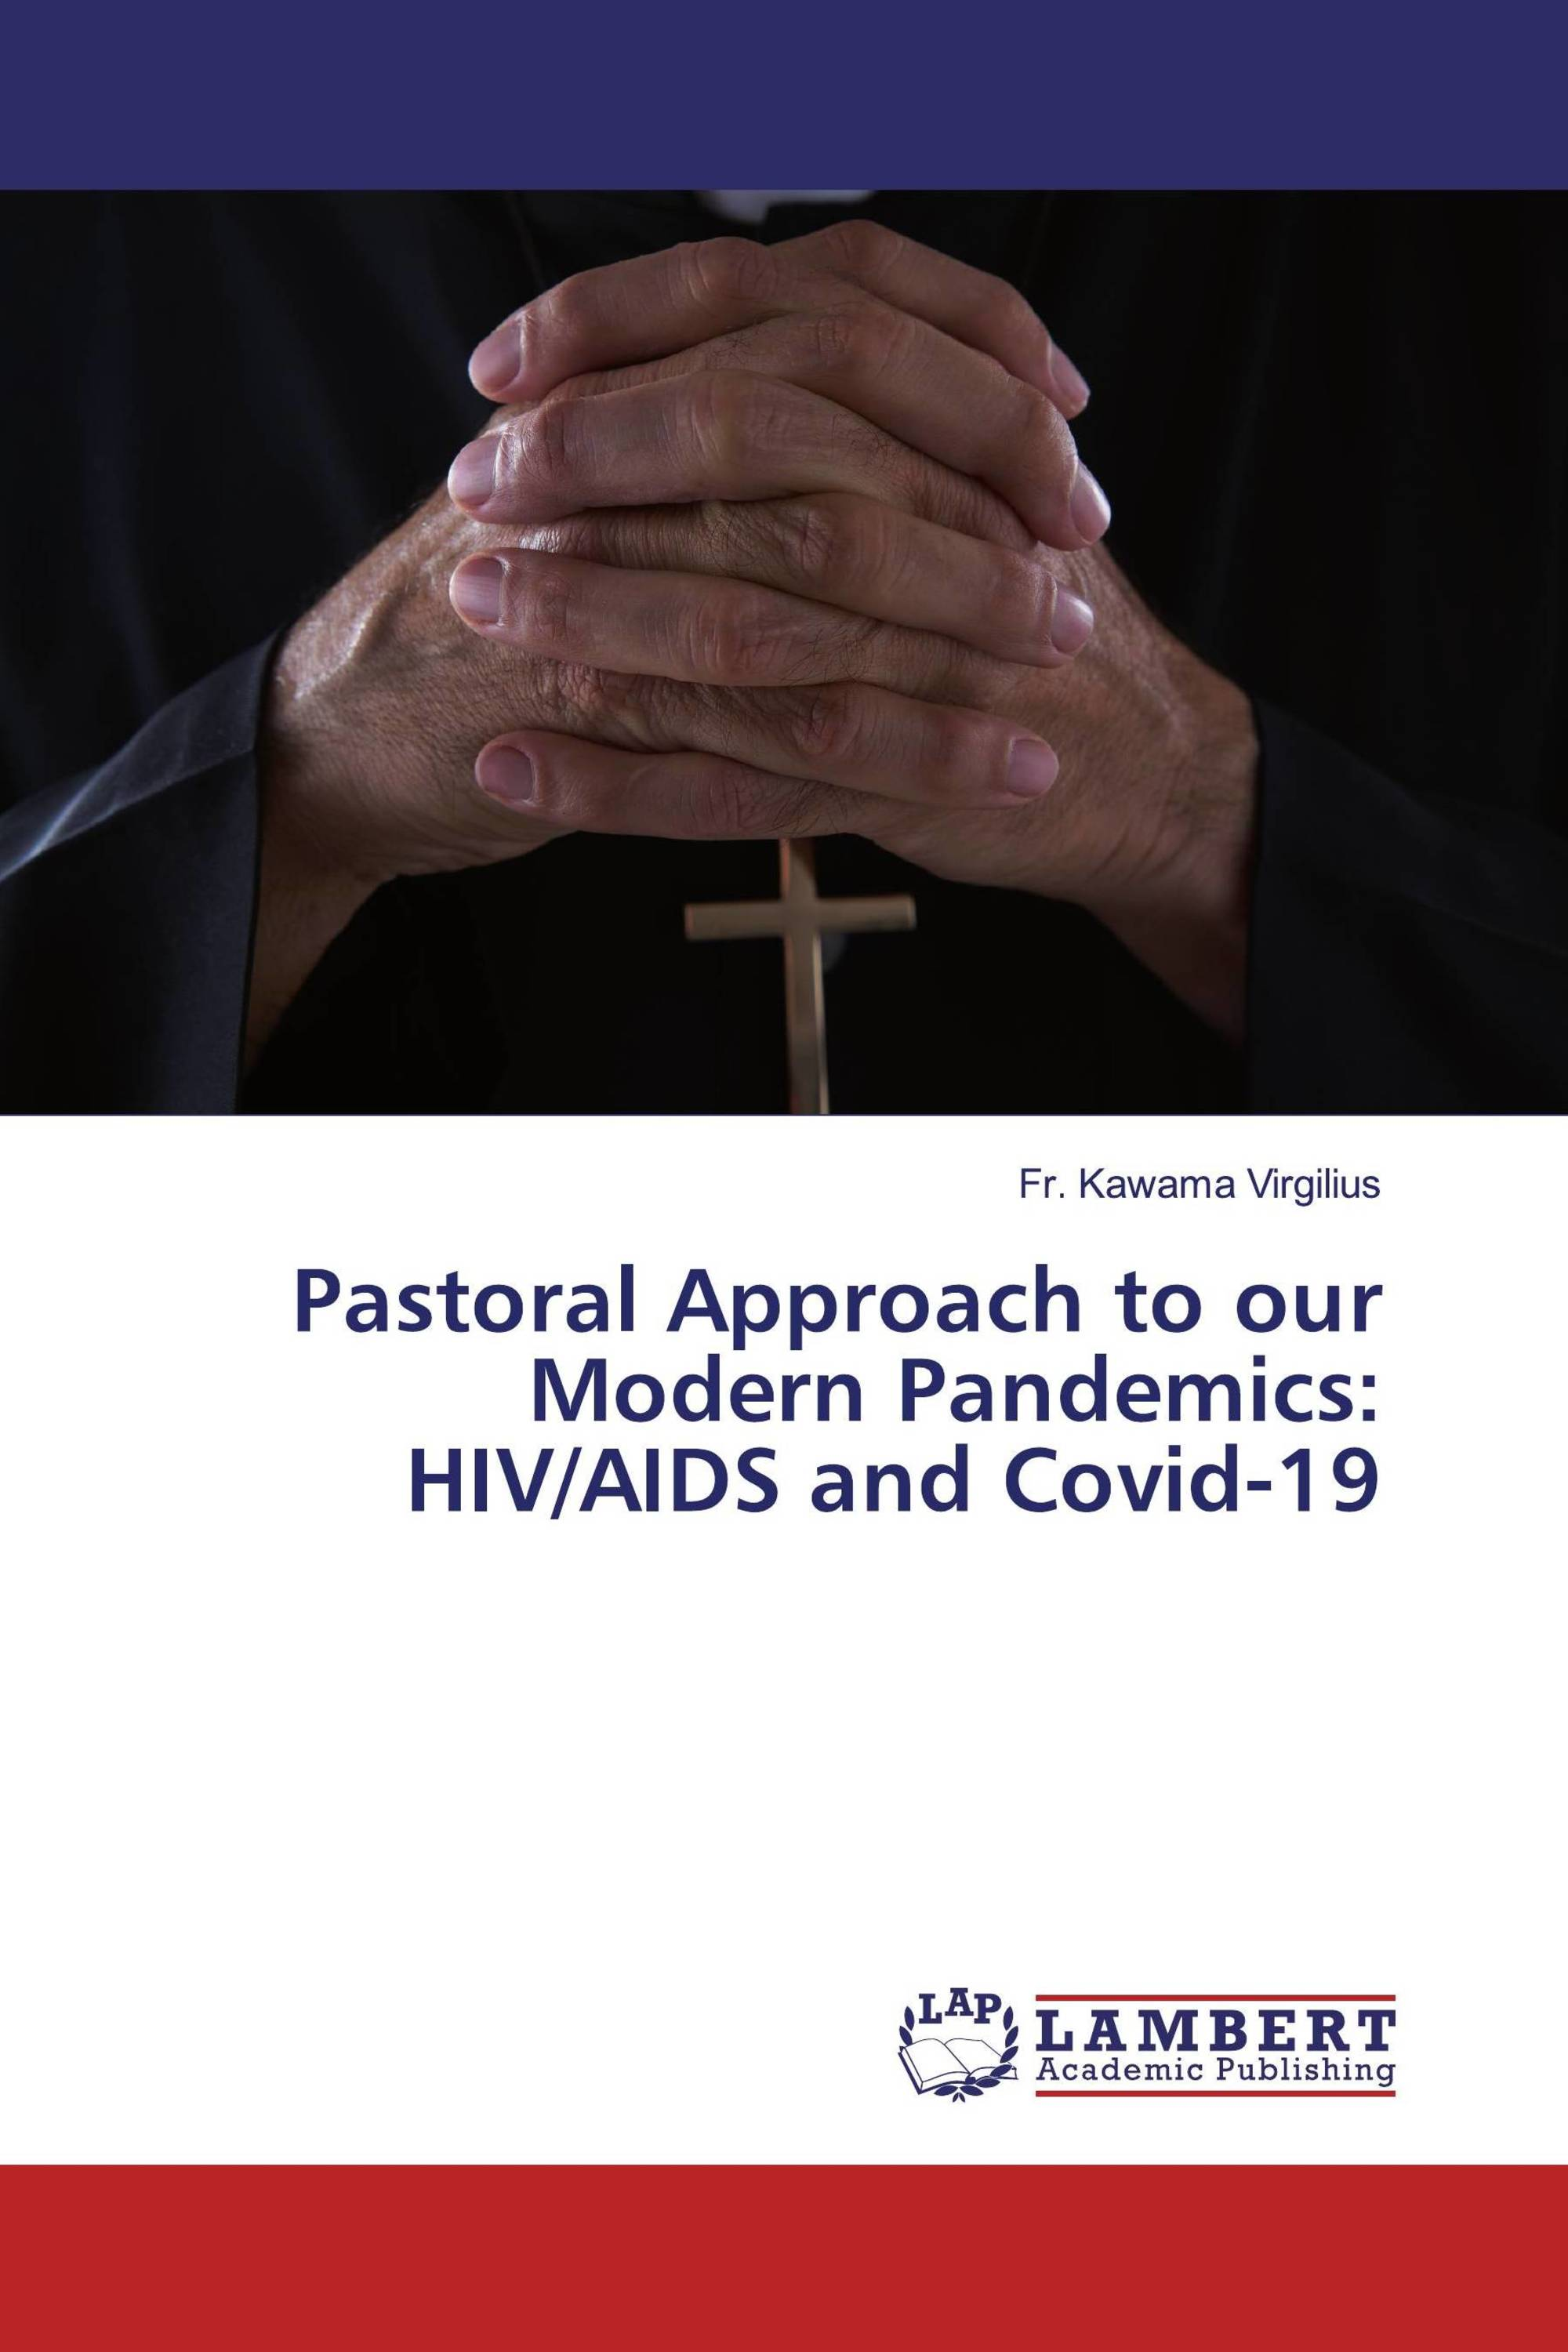 Pastoral Approach to our Modern Pandemics: HIV/AIDS and Covid-19